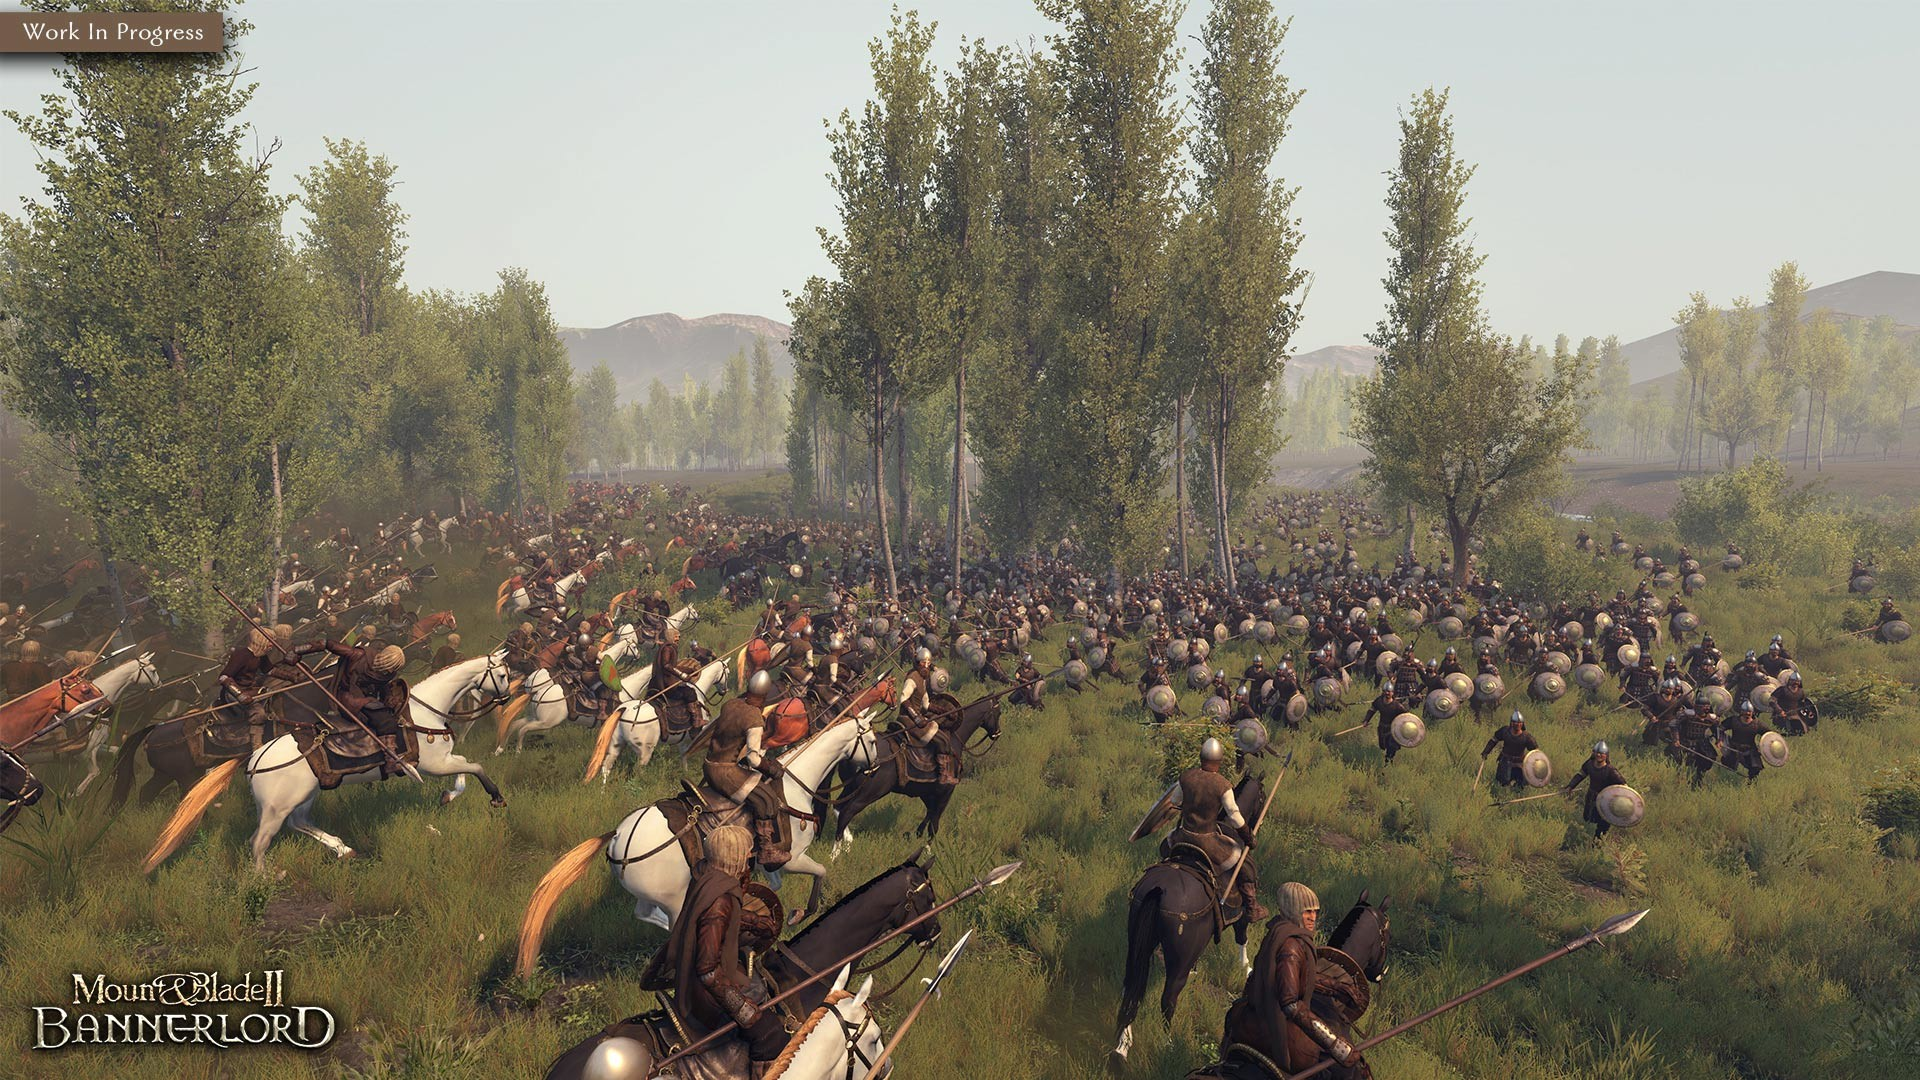 Mount & Blade II: Bannerlord Early Access Release Moved Forward To March  30th